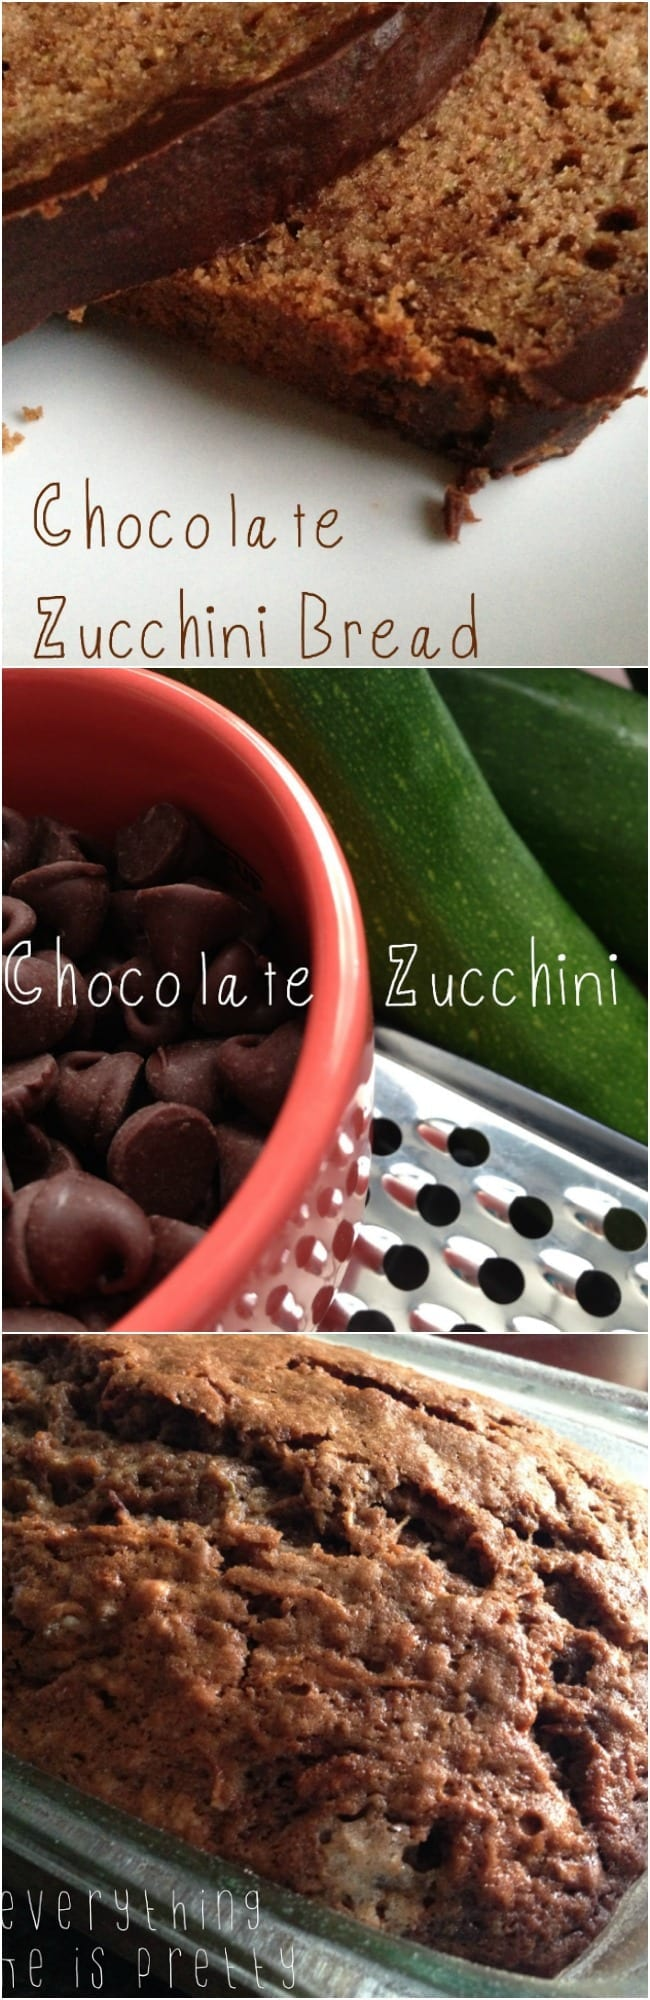 Homemade chocolate zucchini bread covered in chocolate ganache!